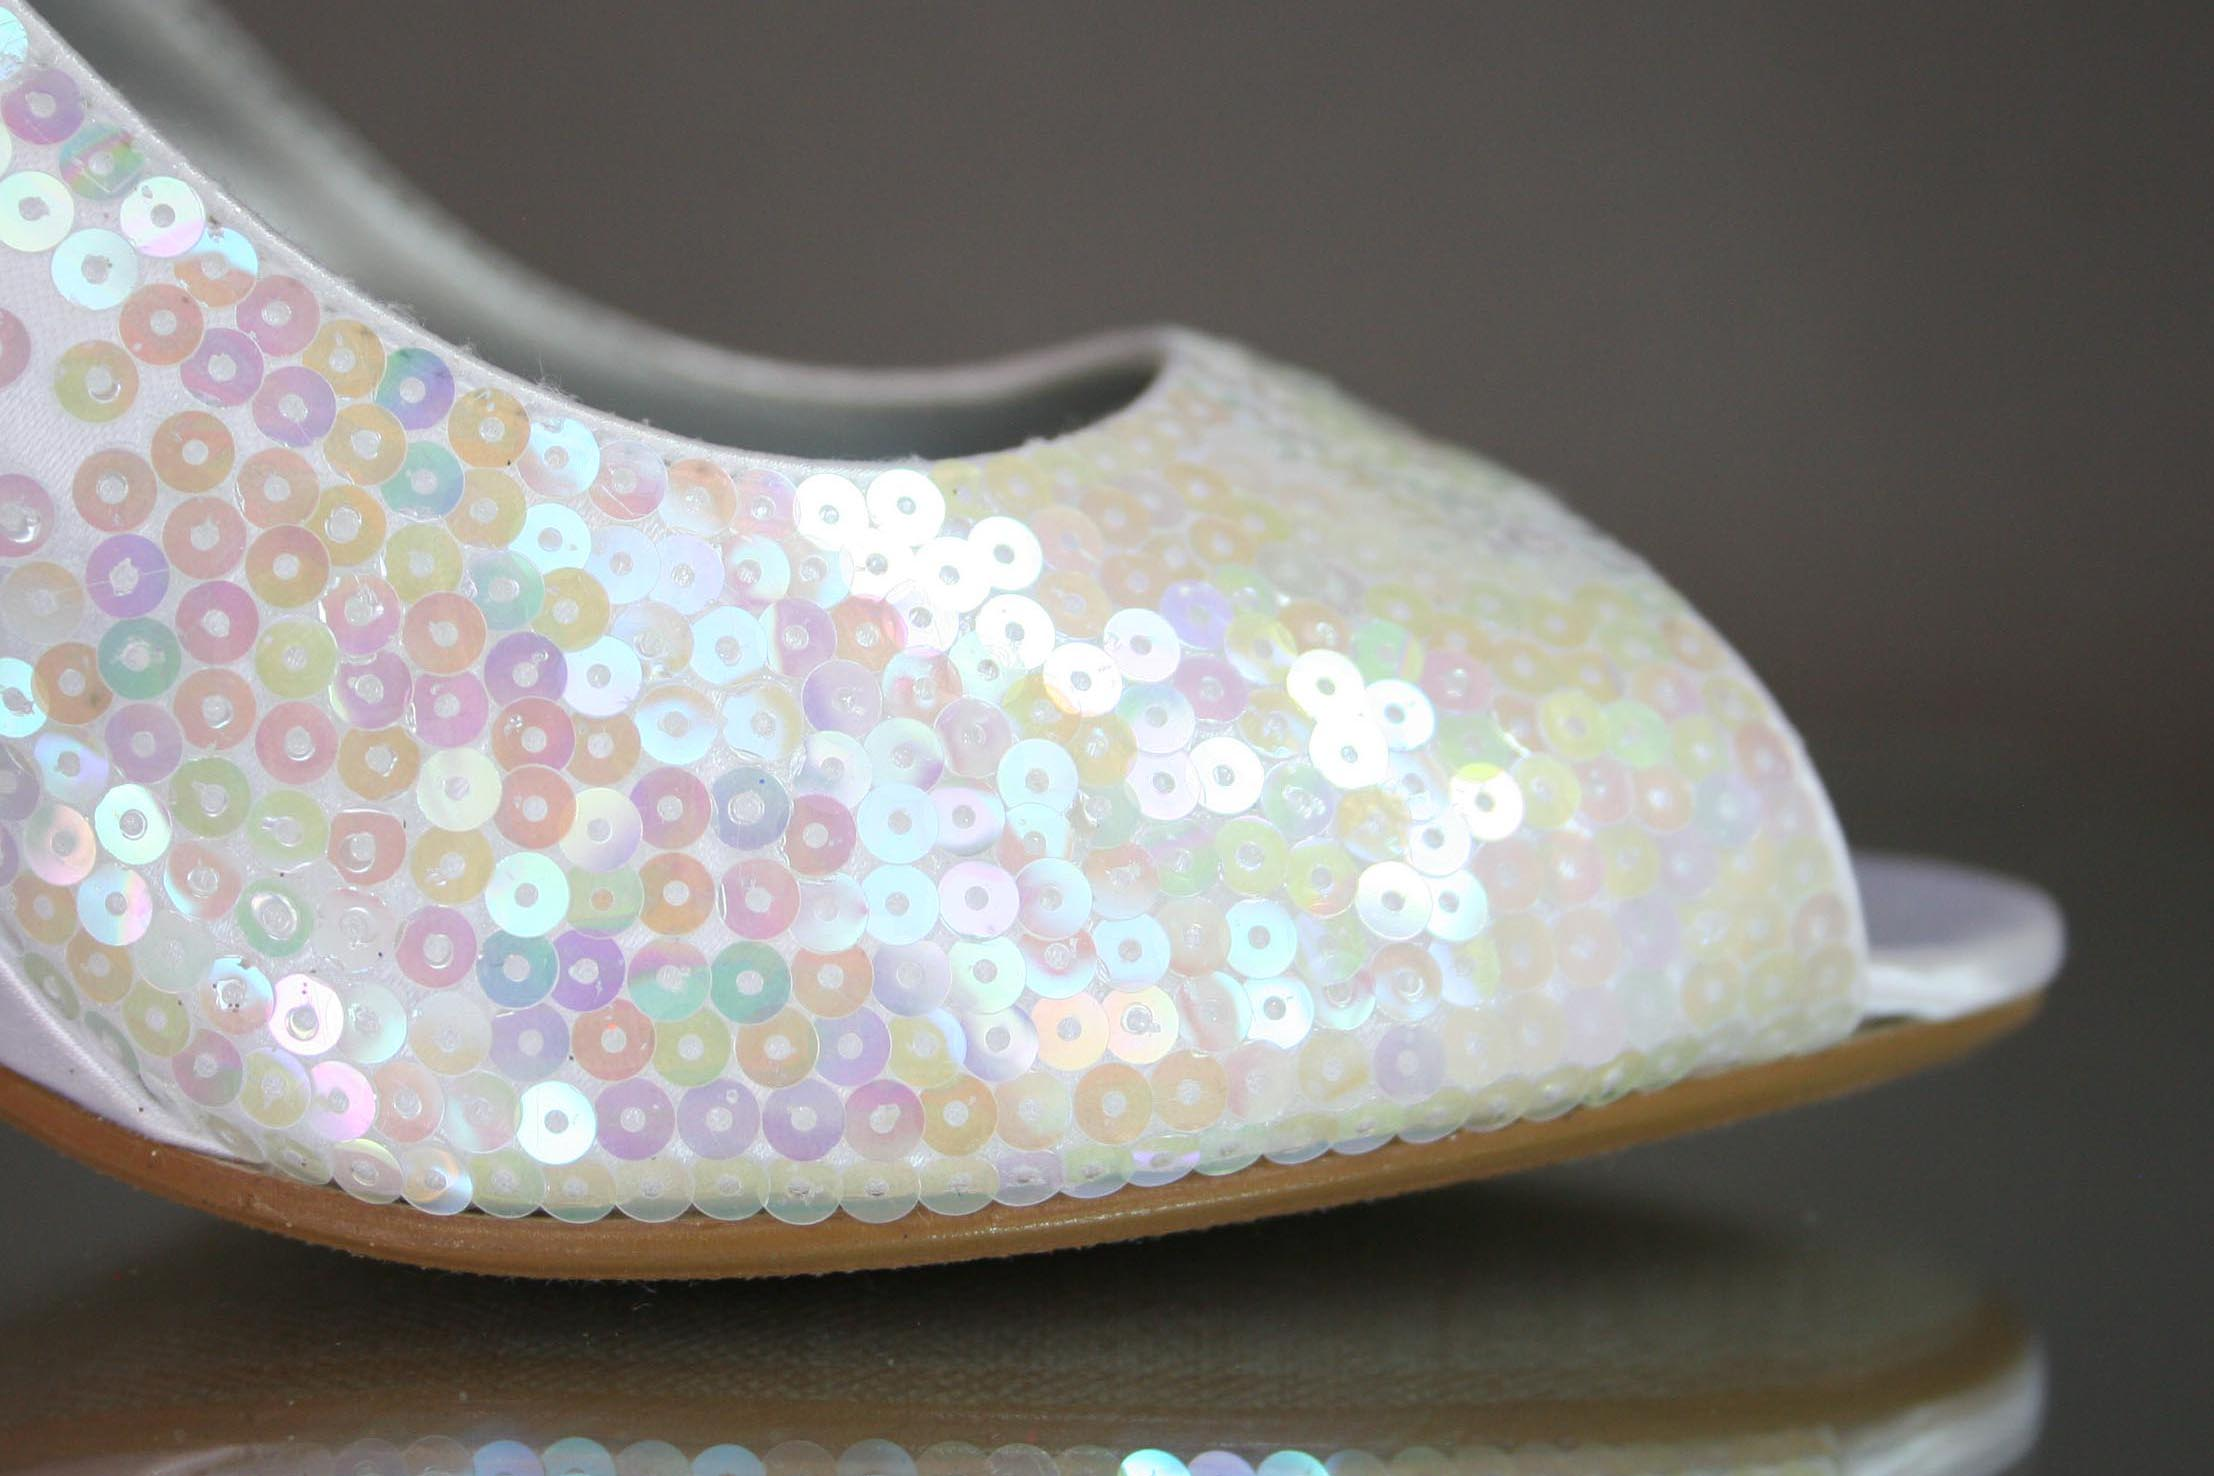 Iridescent Sequin New Year's Eve Wedding Wedge Shoes Custom Wedding Shoes by Ellie Wren